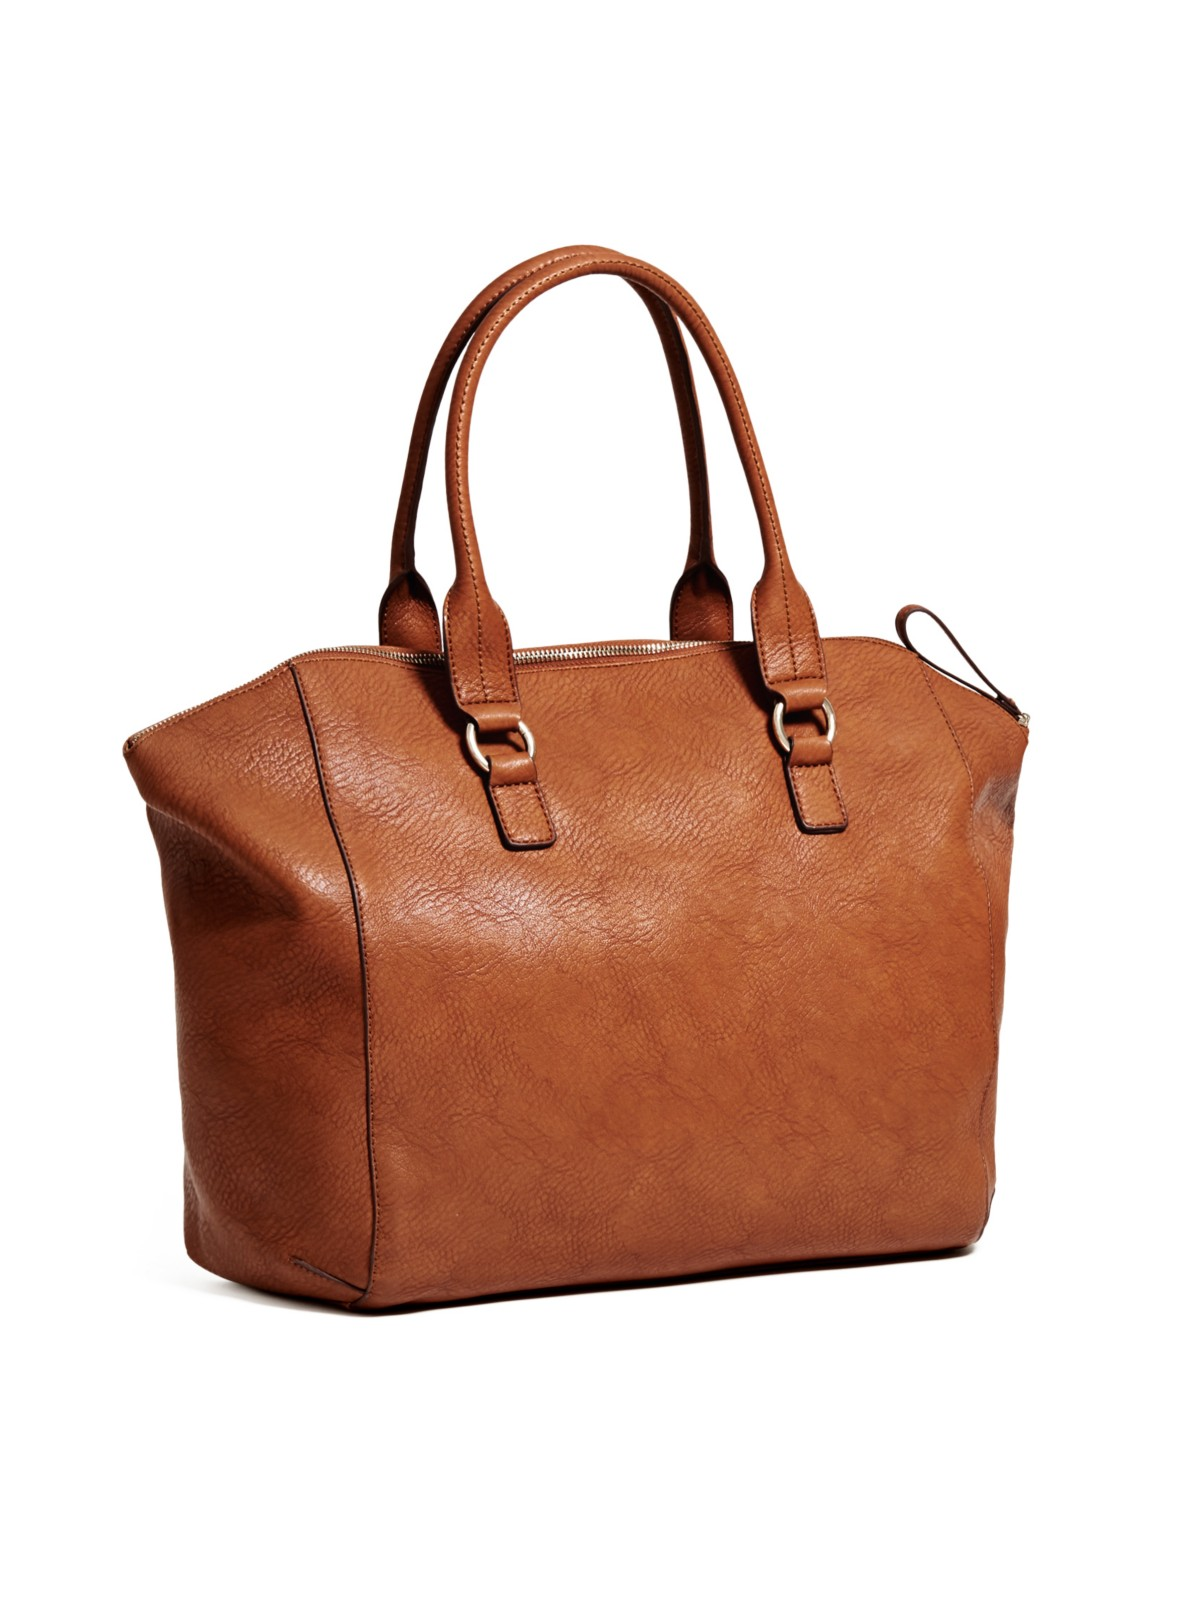 5fcc77331fd0bd Snake Embossed Handbags | Stanford Center for Opportunity Policy in ...